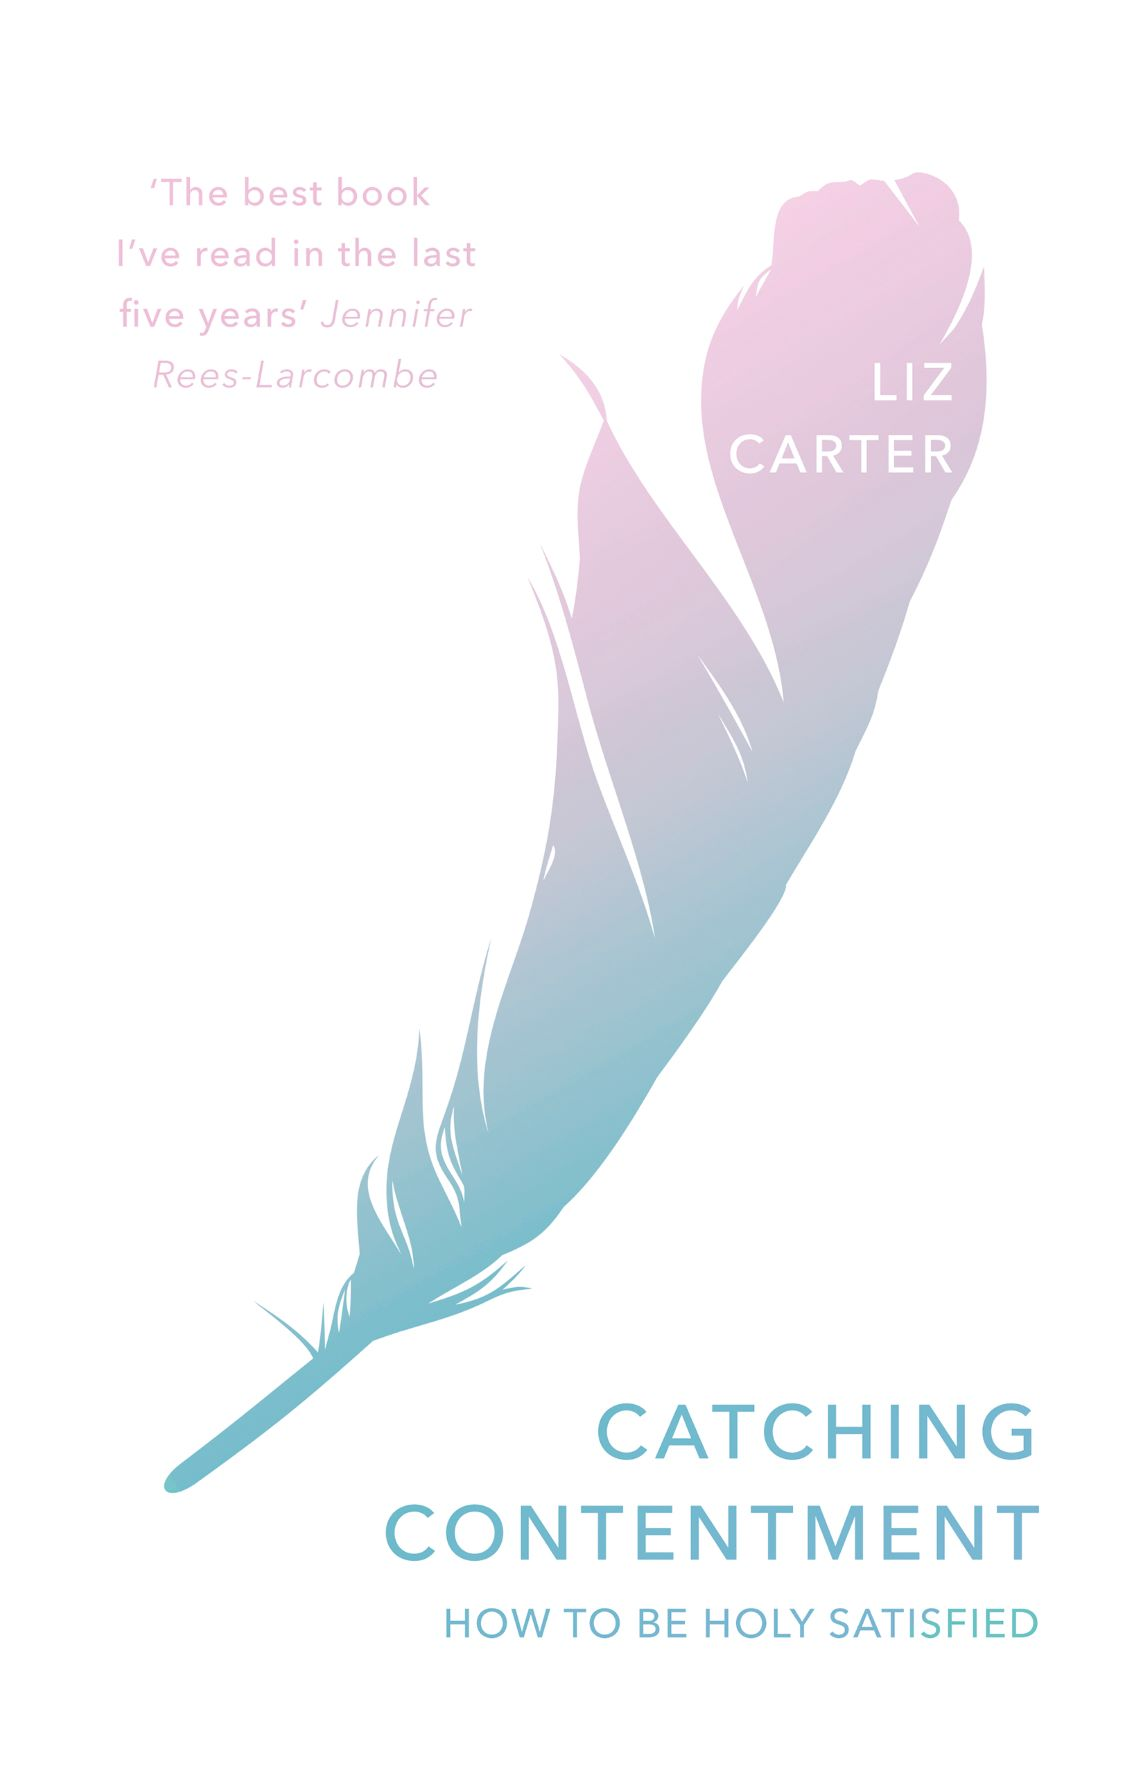 5 Questions for Liz Carter